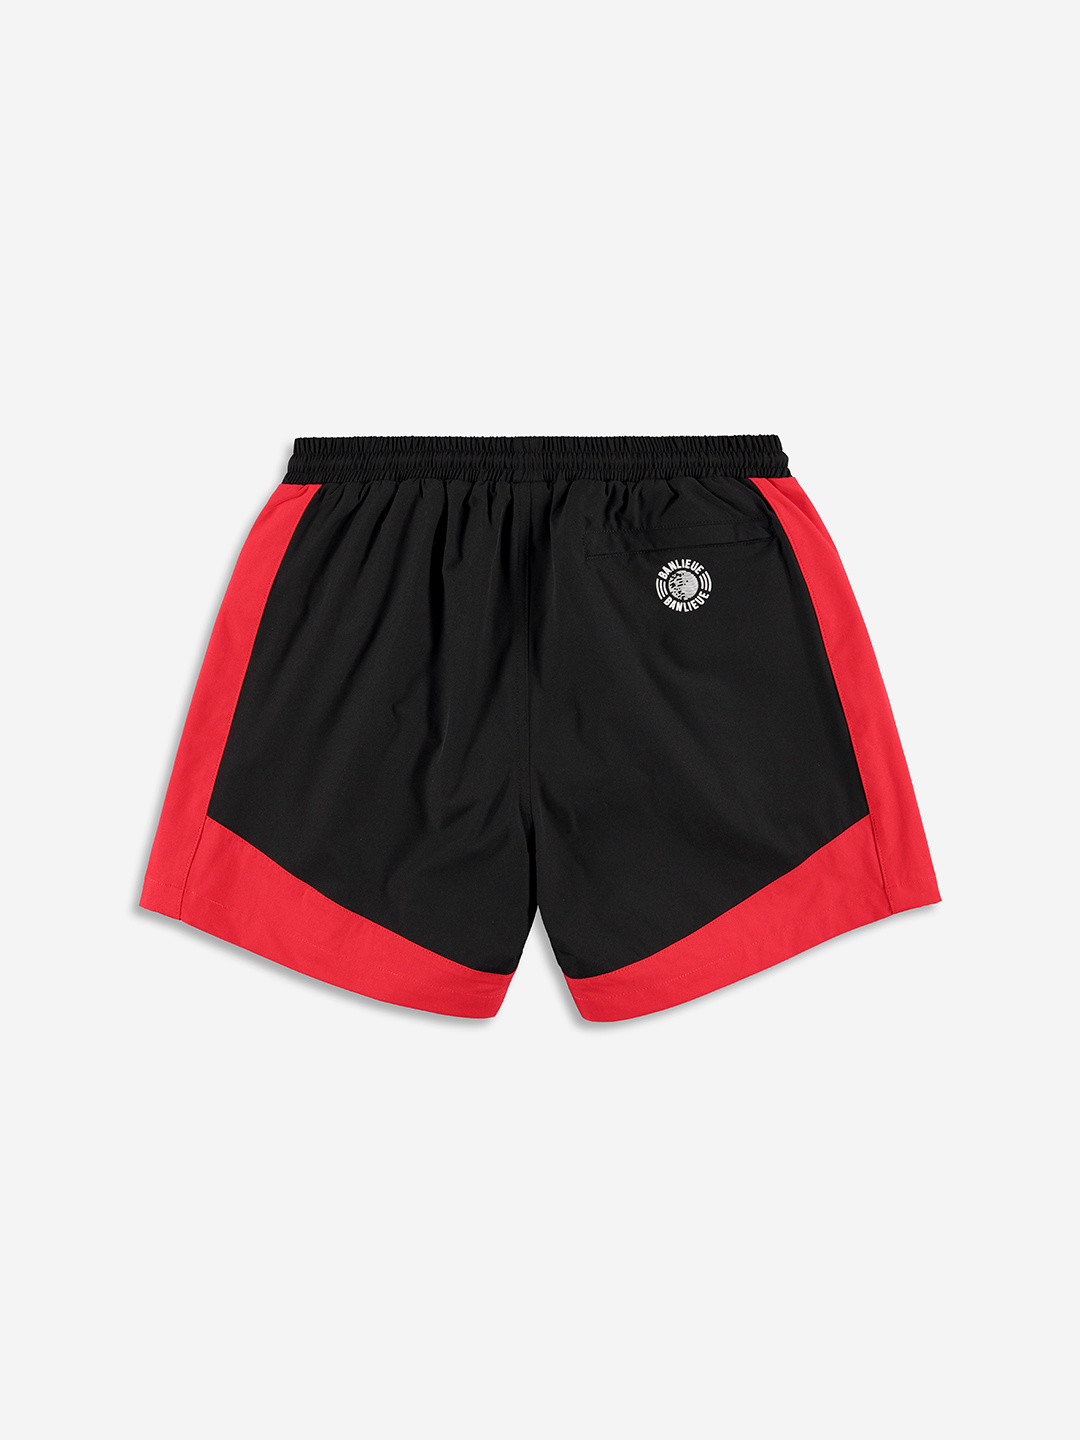 3D SWIMSHORTS ROUGE/NOIR